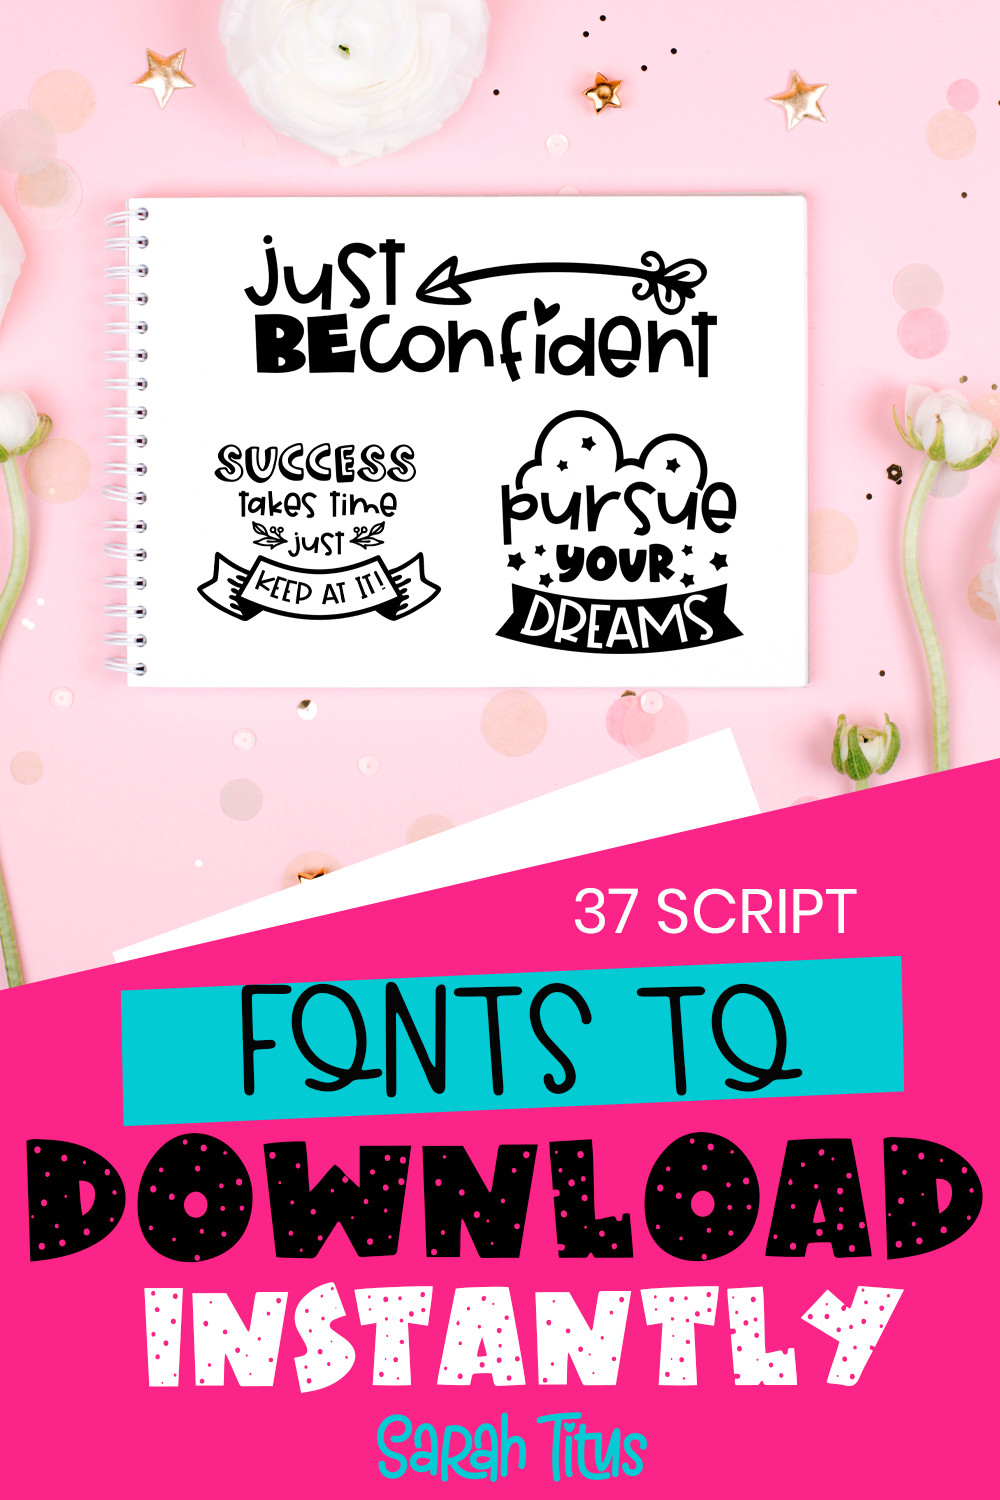 Be different and give your own personal touch to all your designs, photos, and posts with these absolutely beautiful 37 Script Fonts to Download Instantly! #fonts #bestfonts #scriptfonts #bloggingfonts #calligraphyfonts